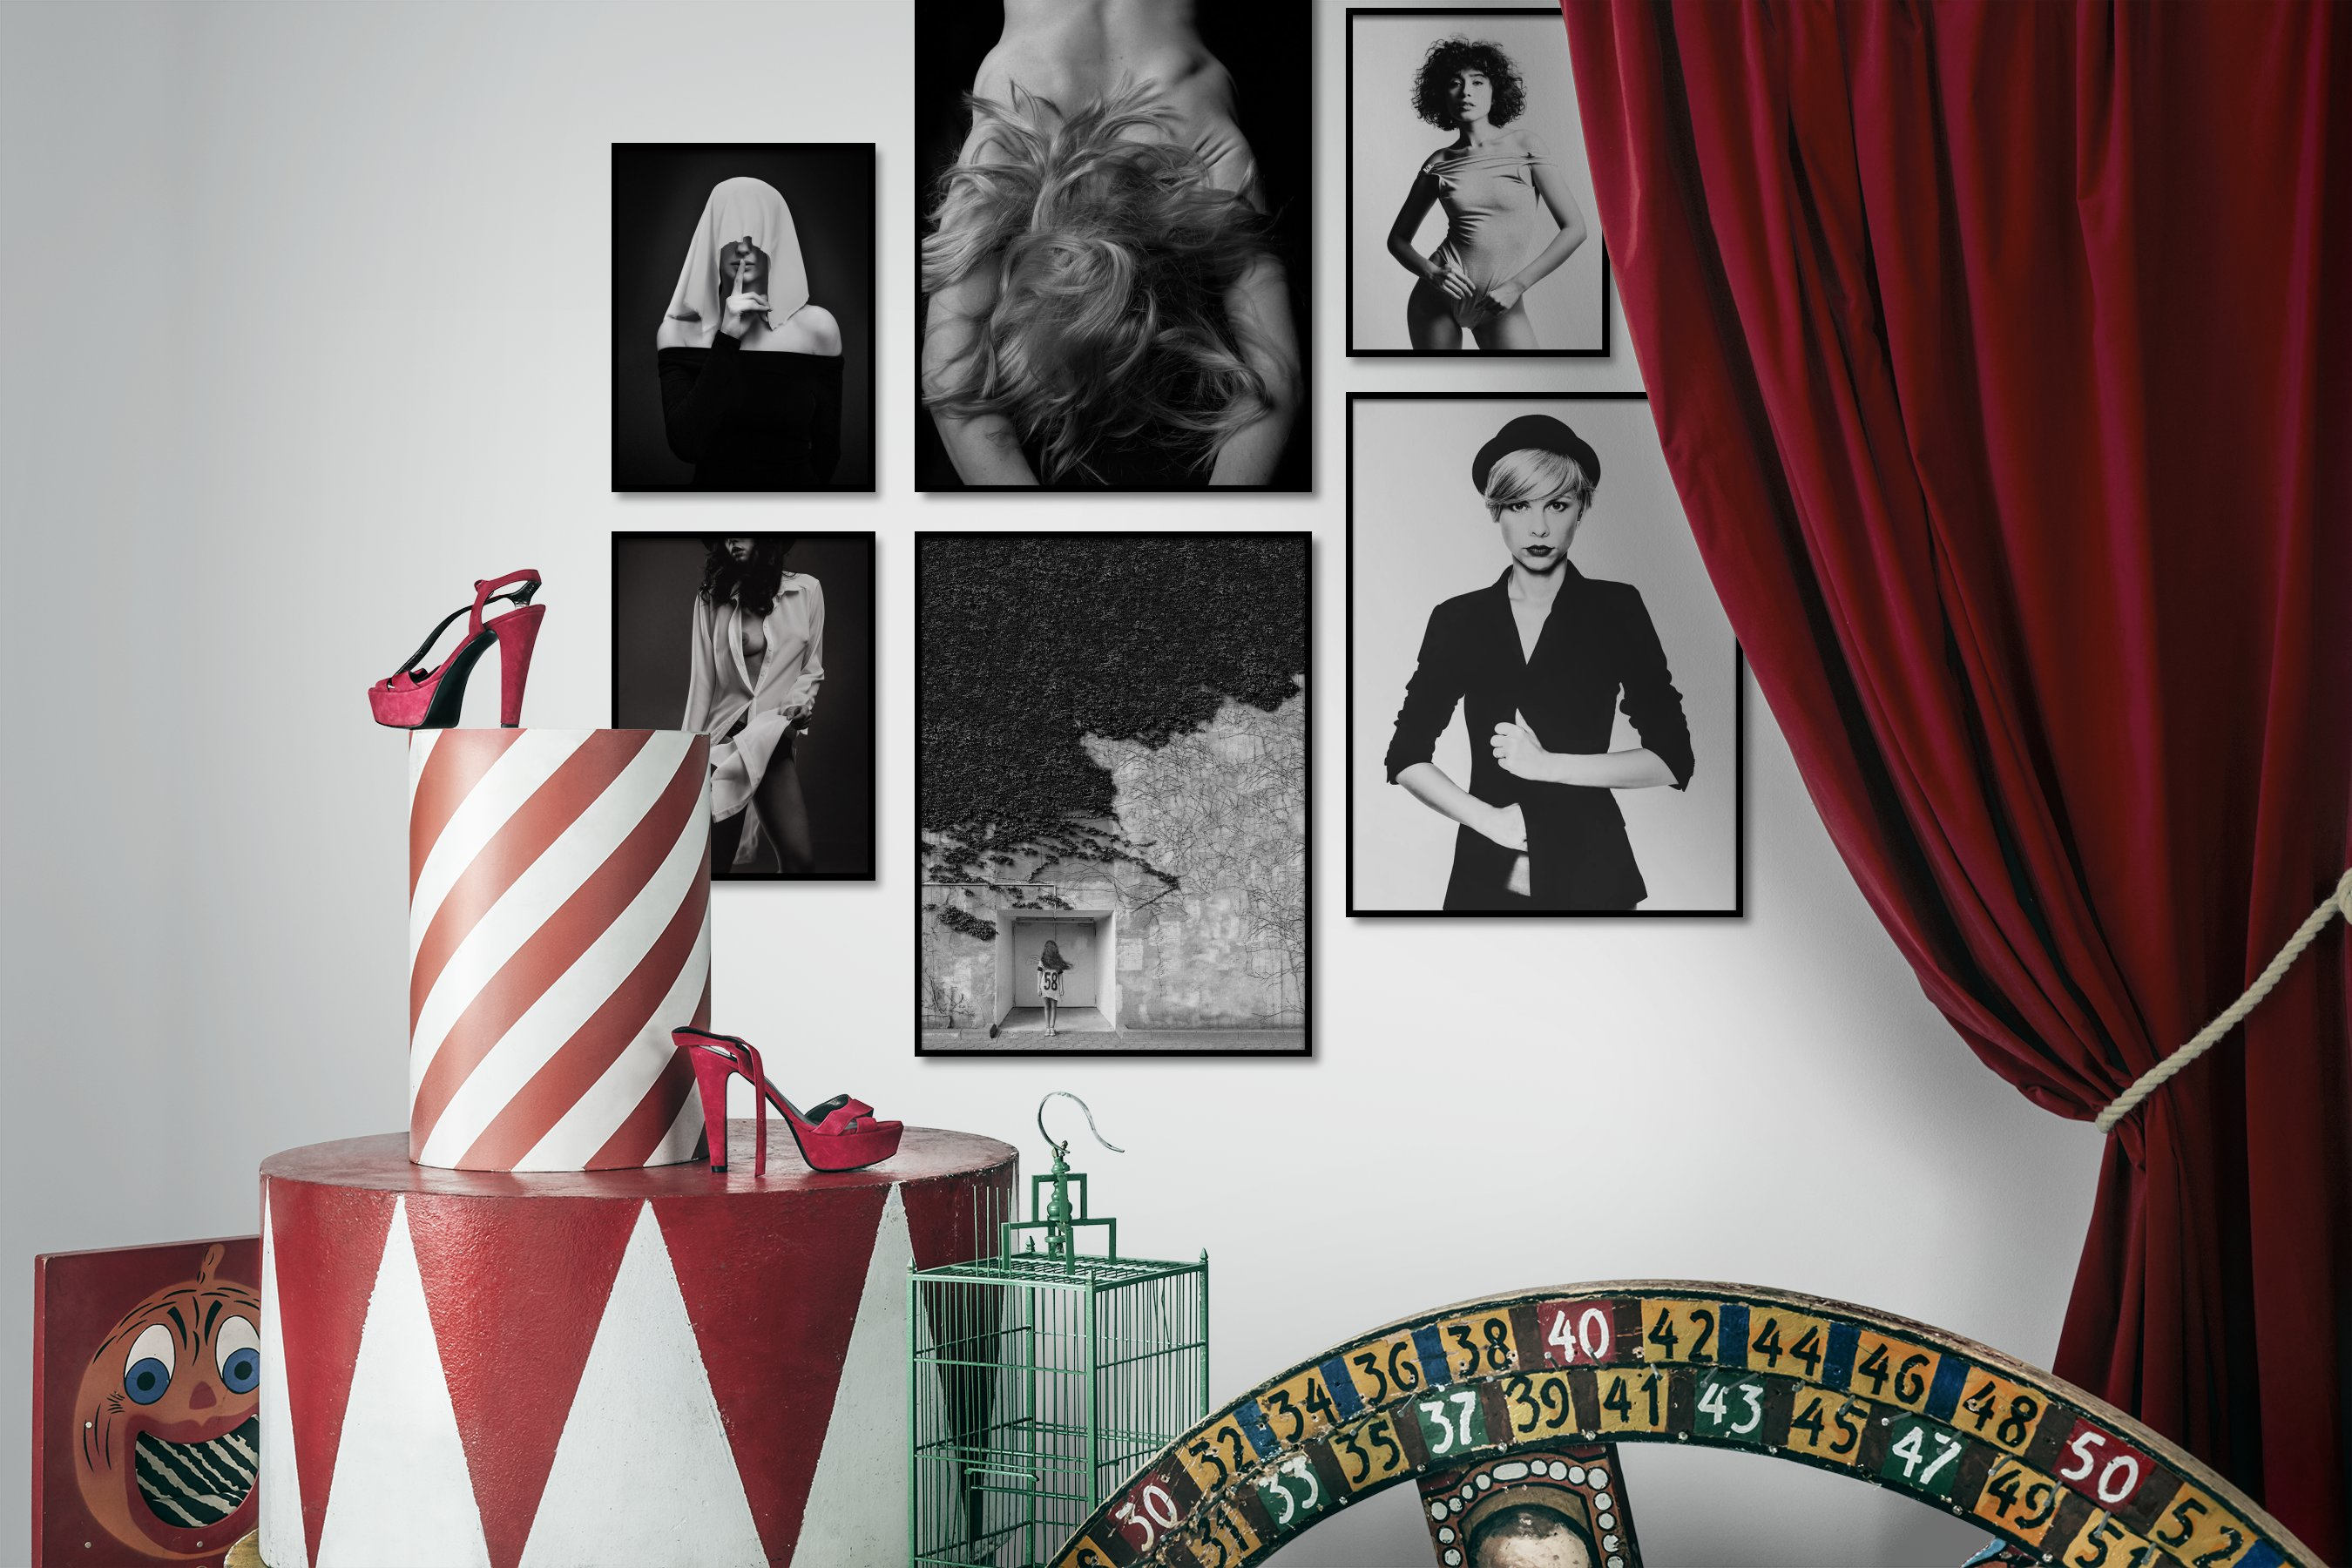 Gallery wall idea with six framed pictures arranged on a wall depicting Fashion & Beauty, Black & White, Dark Tones, Bold, Artsy, For the Moderate, and Bright Tones